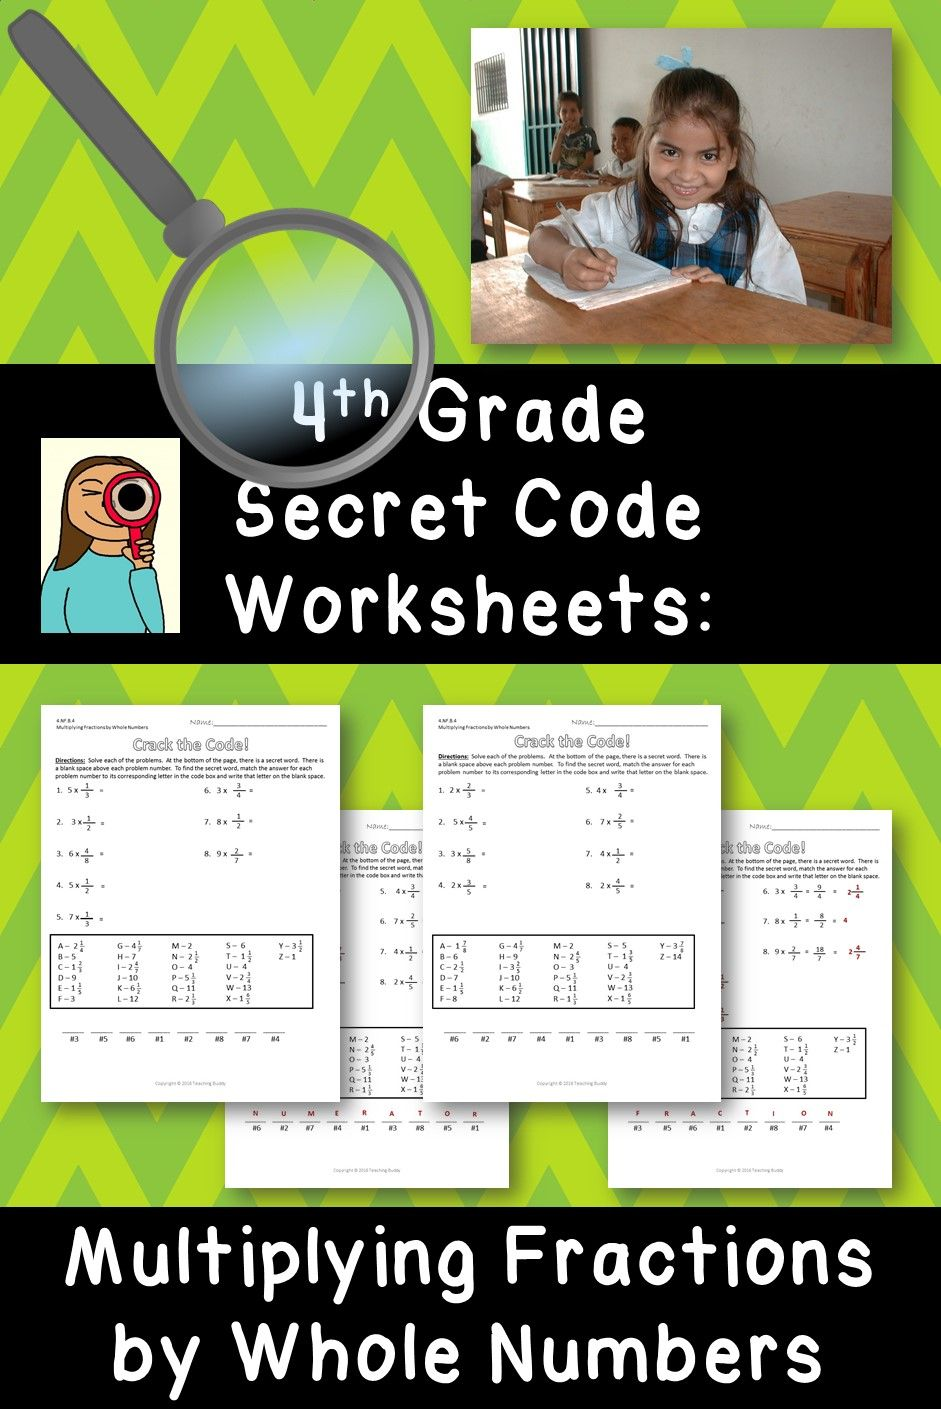 Multiplying Fractions By Whole Numbers 4th Grade Secret Code Common